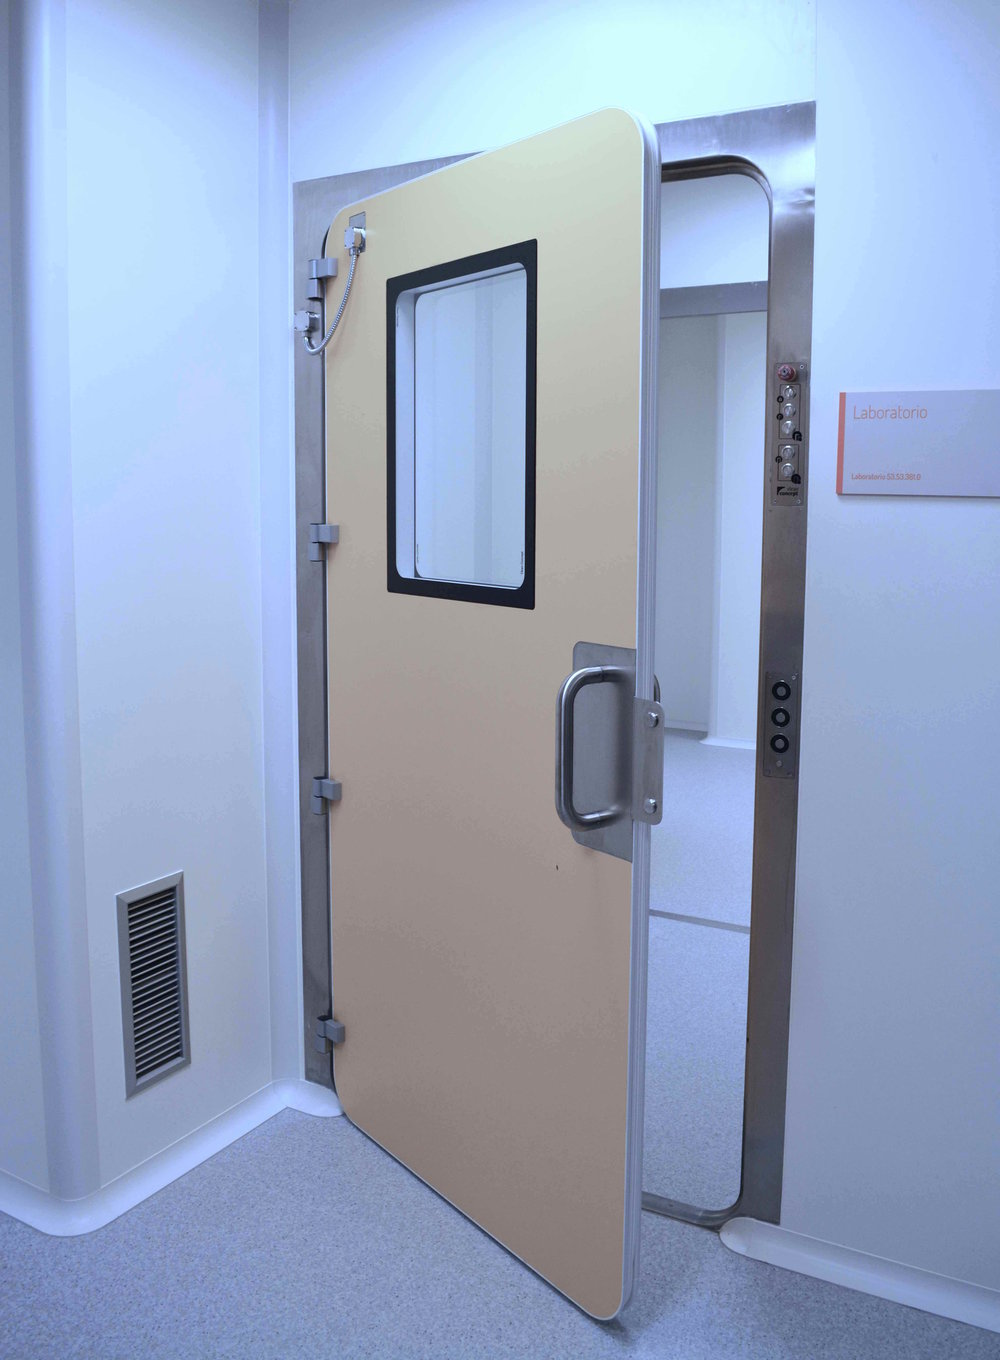 The leaves of the doors are sandwich panel. with outsidefinish made of phenolic resin sheets for a great impact resistance. & Leaktight Doors \u2014 VALORTECS   Séchage. Micronisation. confinement ...